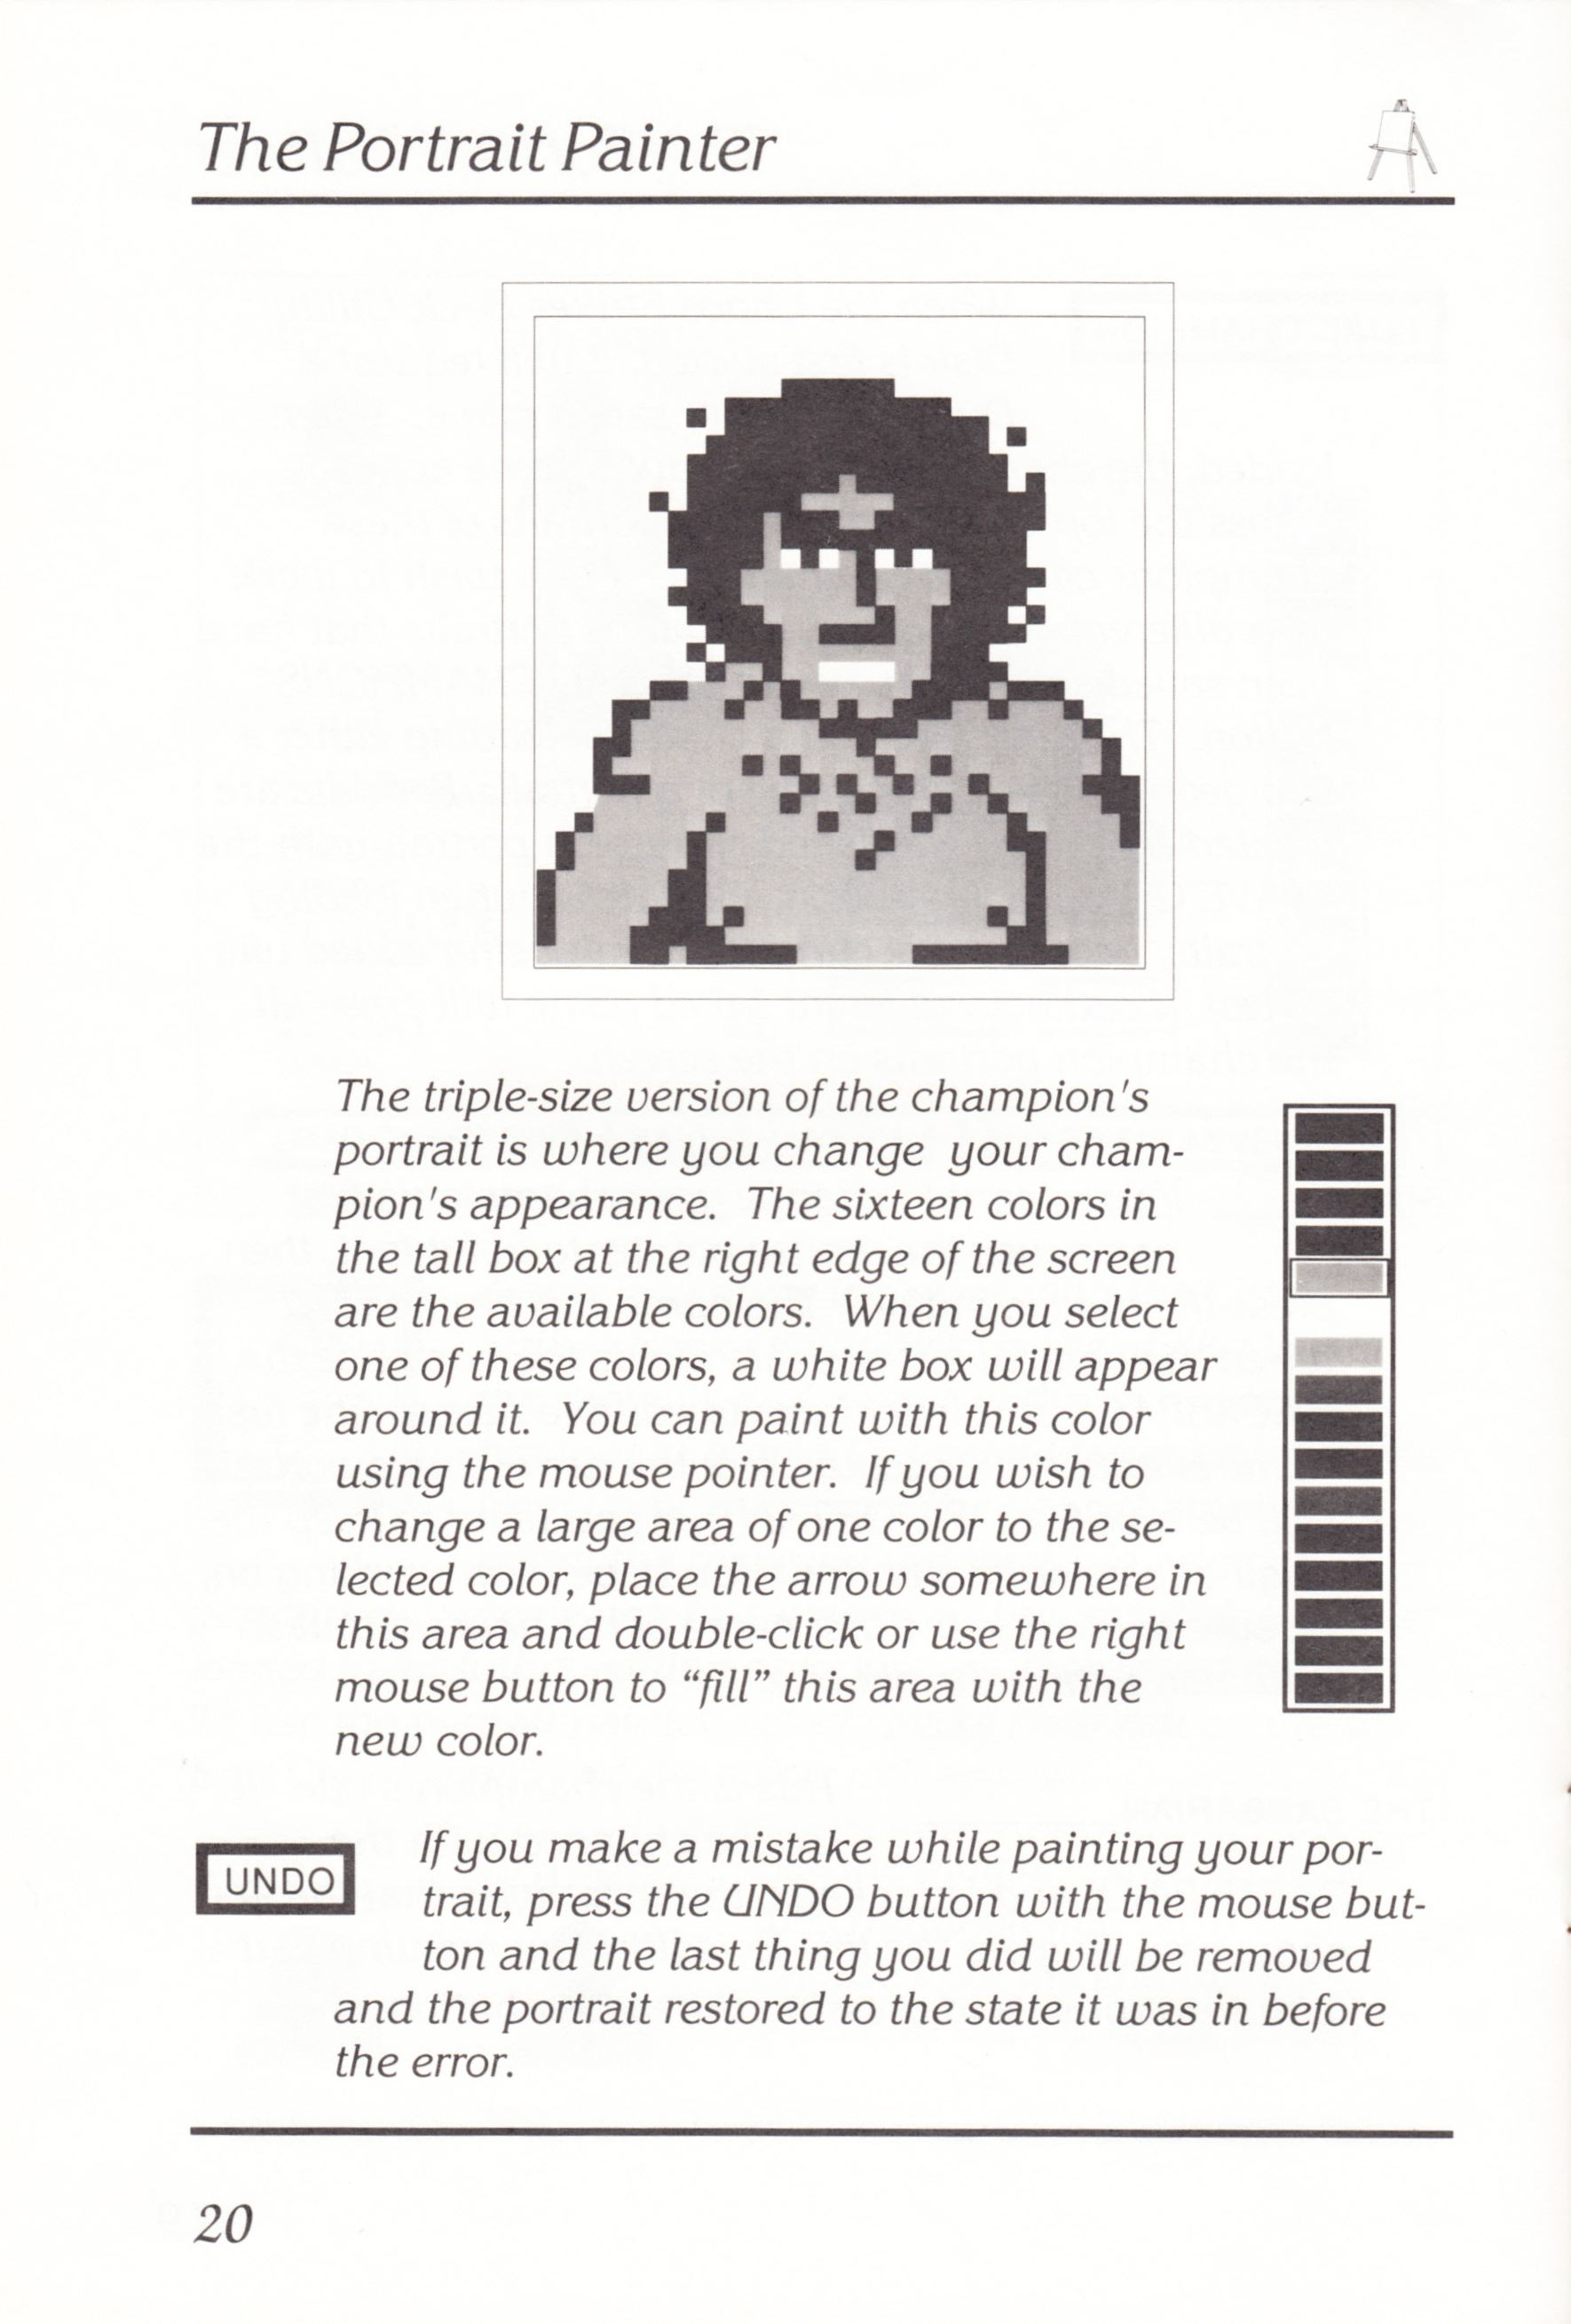 Game - Chaos Strikes Back - UK - Atari ST - Manual - Page 022 - Scan